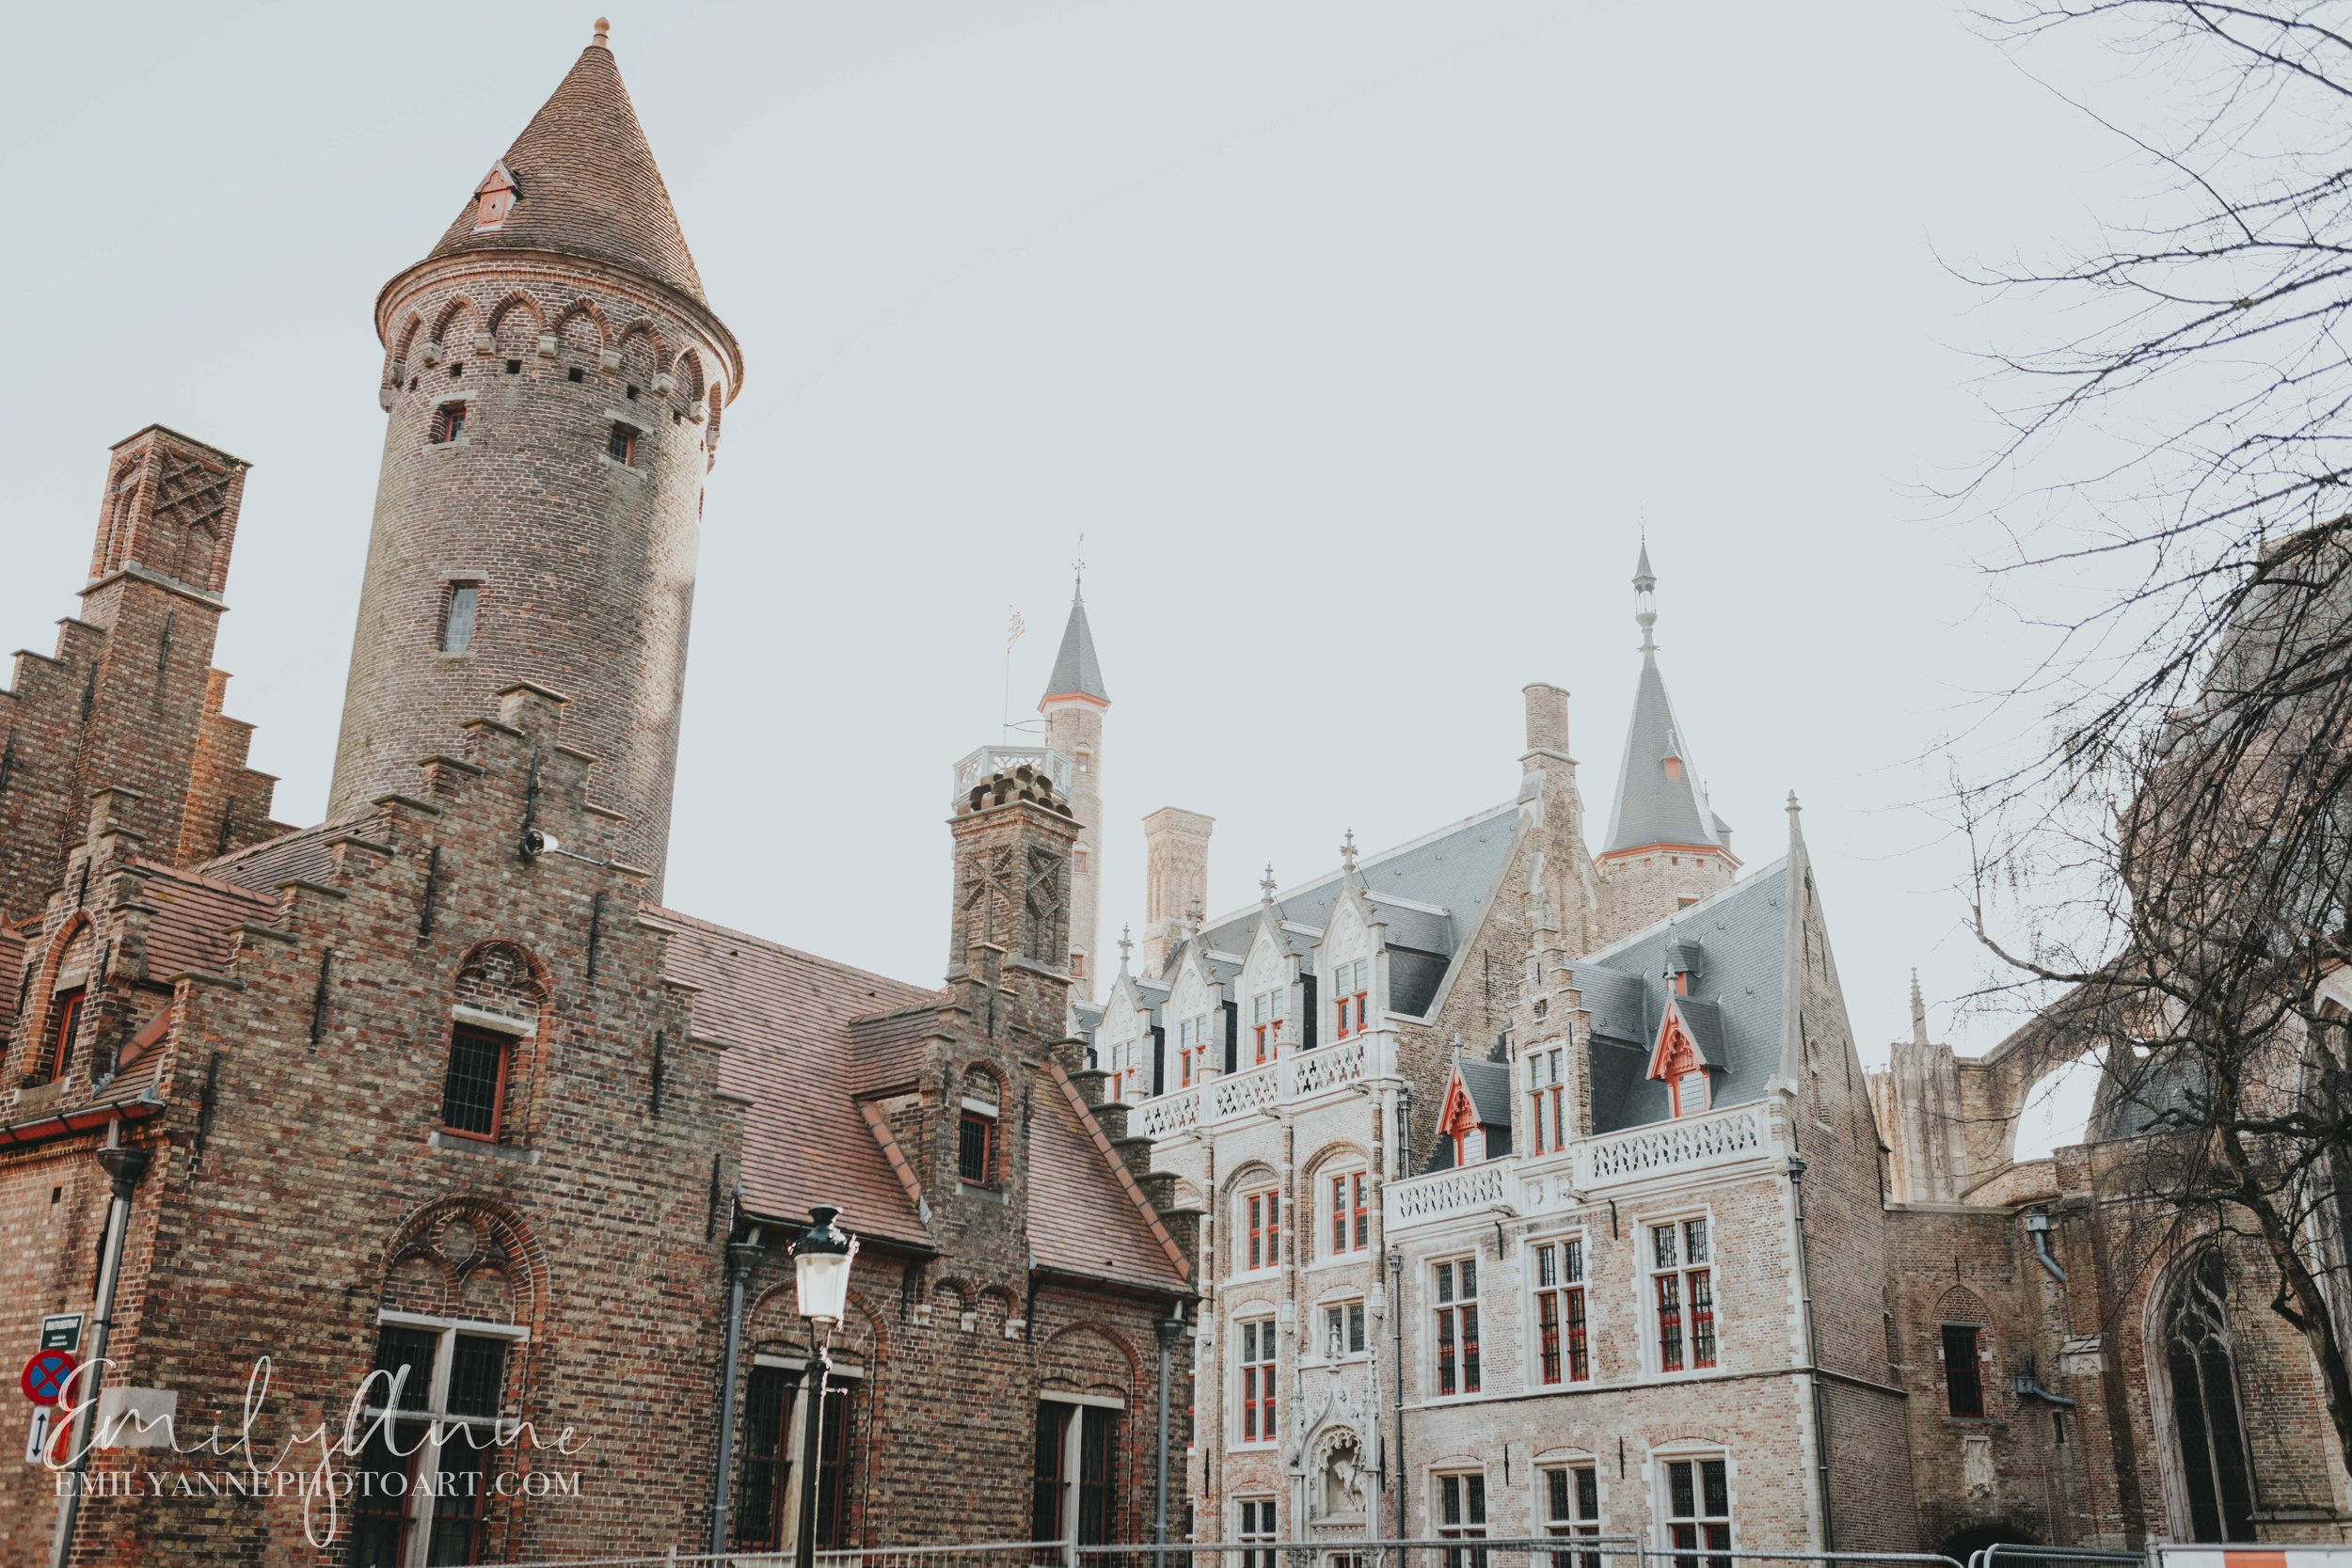 castles in bruges to explore emily Anne photo  art European photographer from Nashville and based in Barcelona